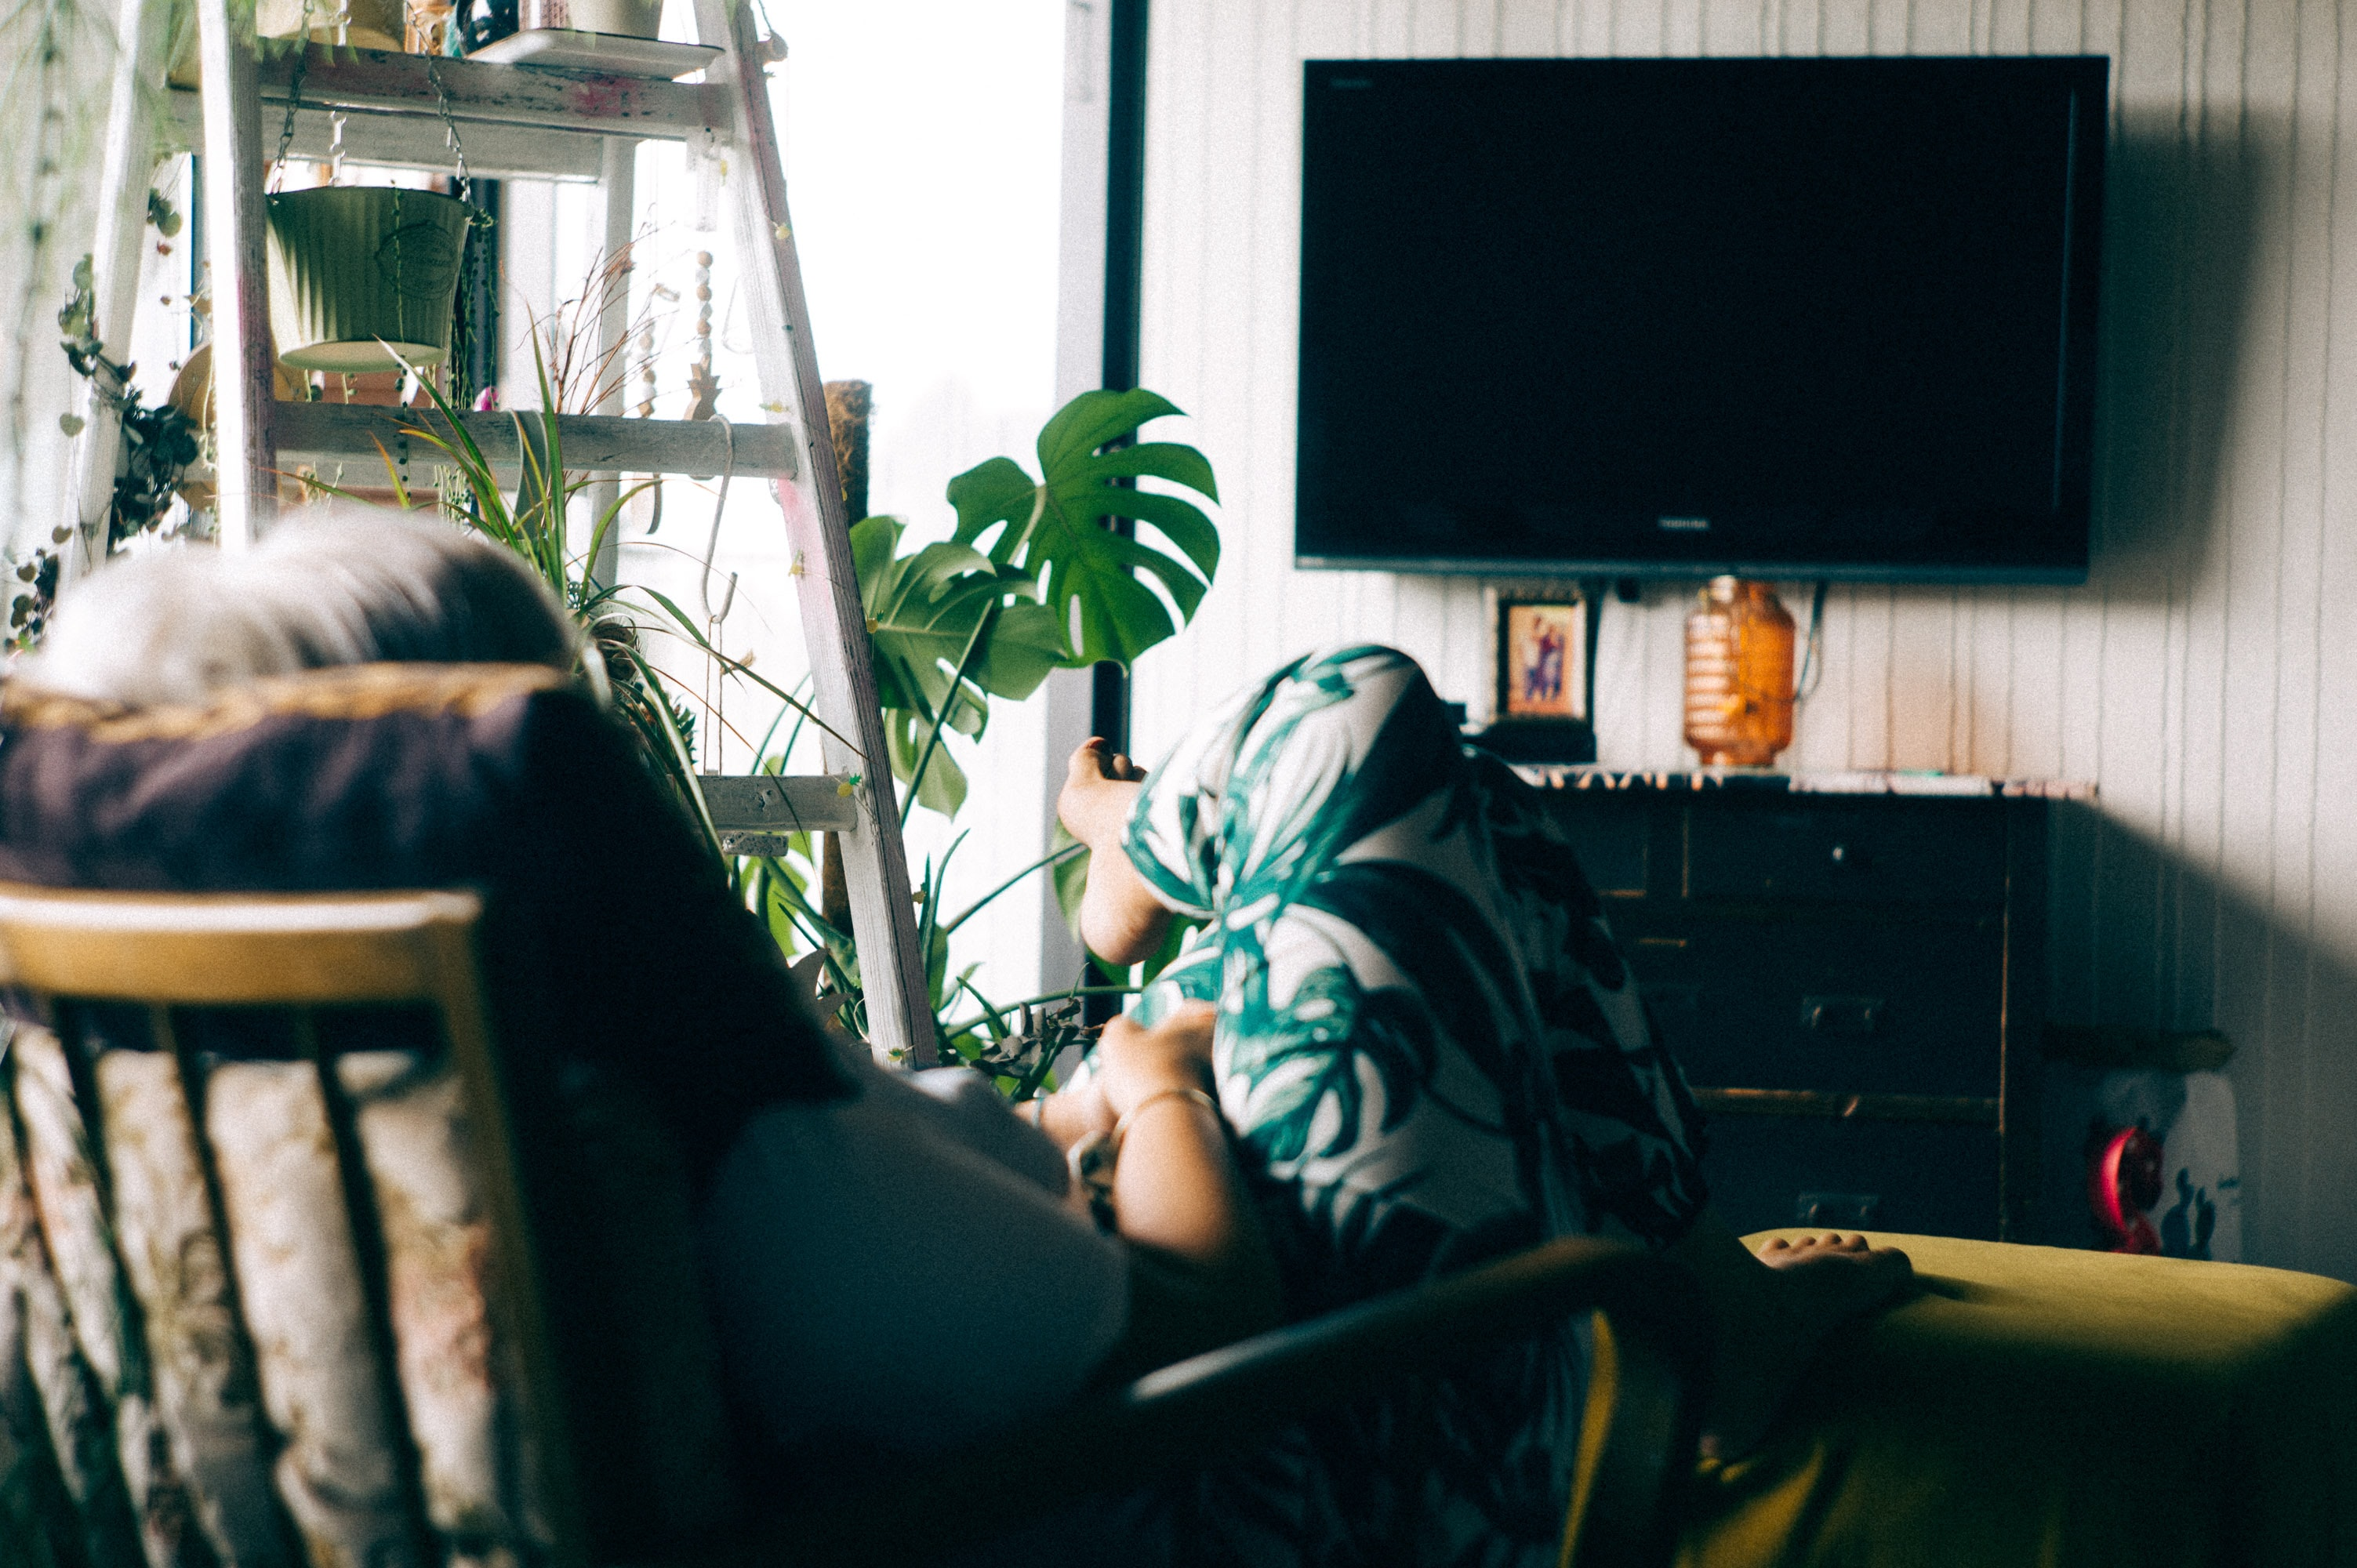 A woman relaxing while effortlessly meditating in front of a television.